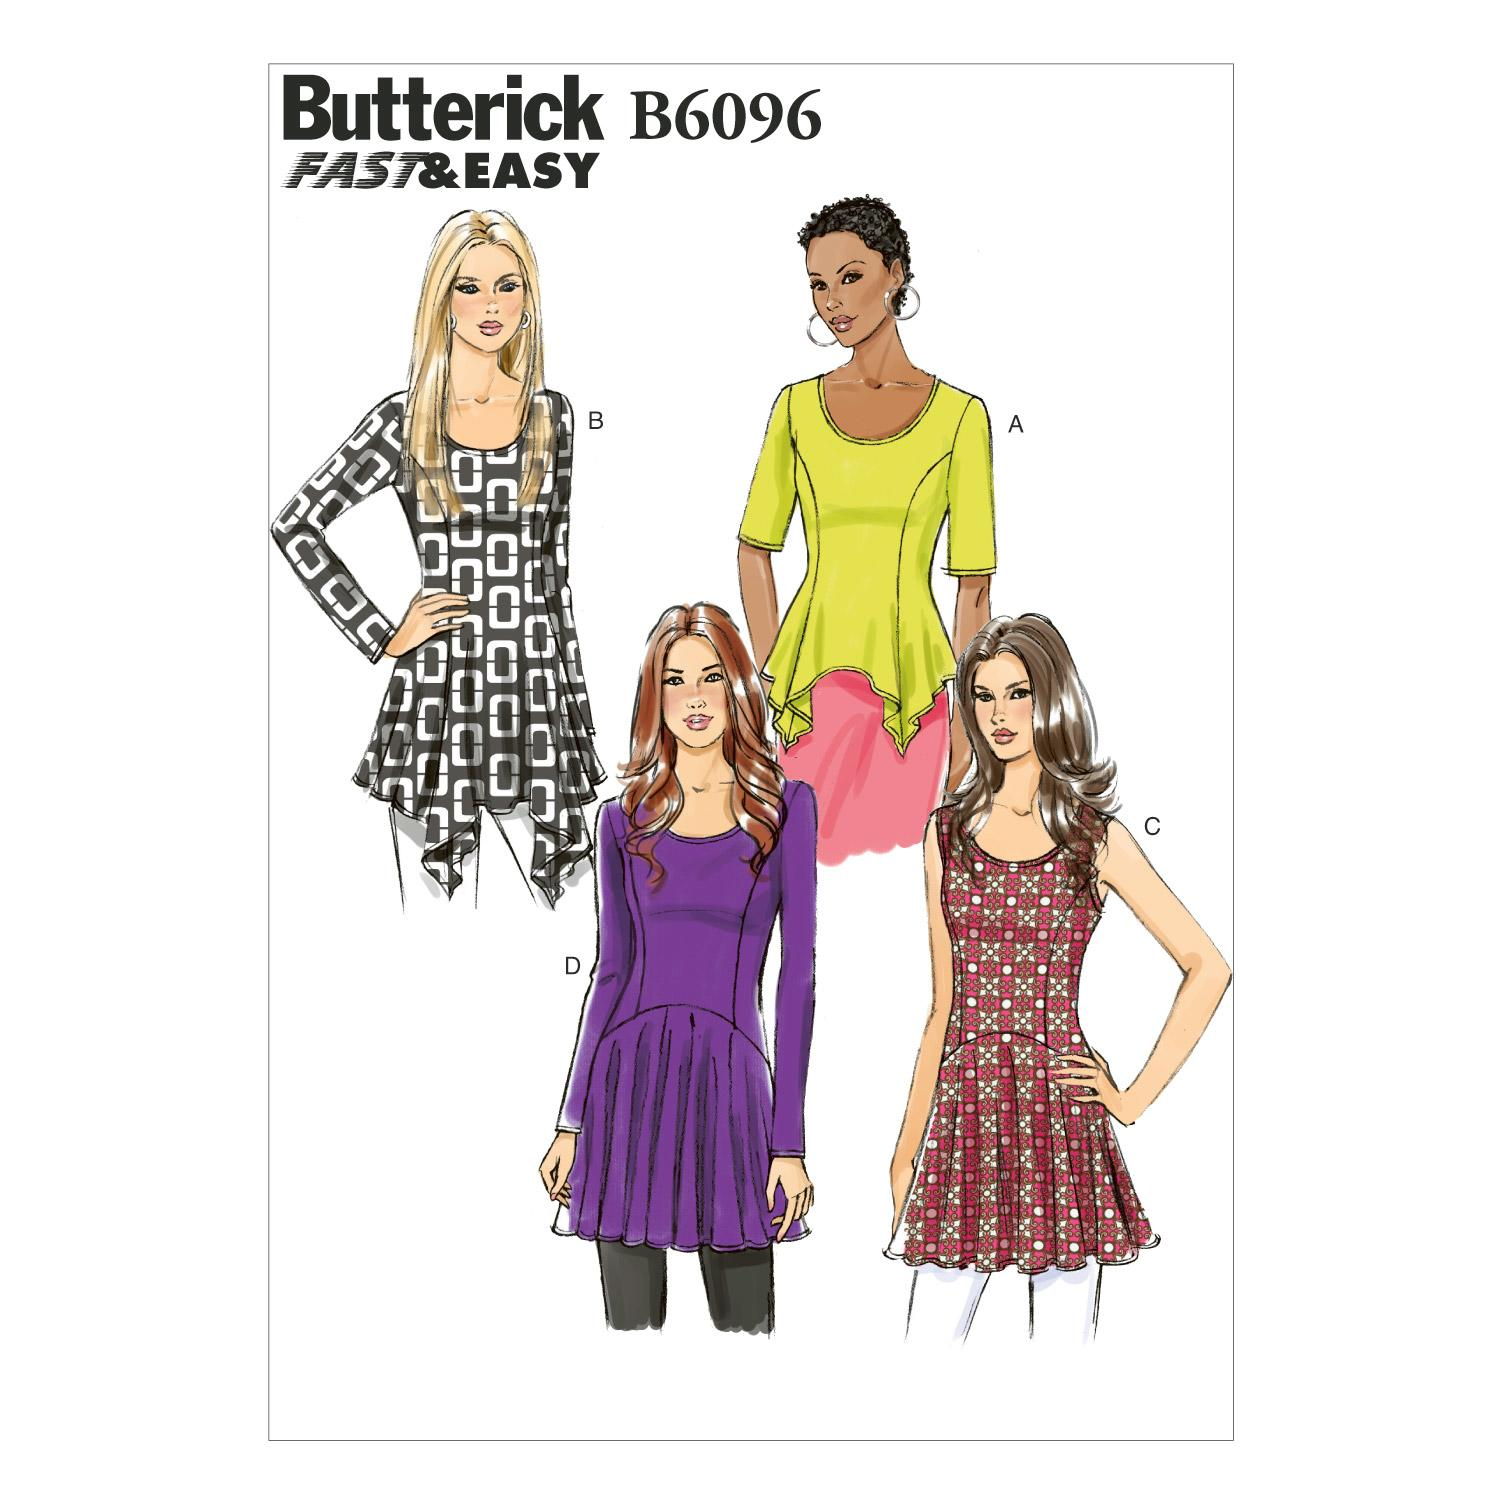 Butterick B6096 Misses' Top